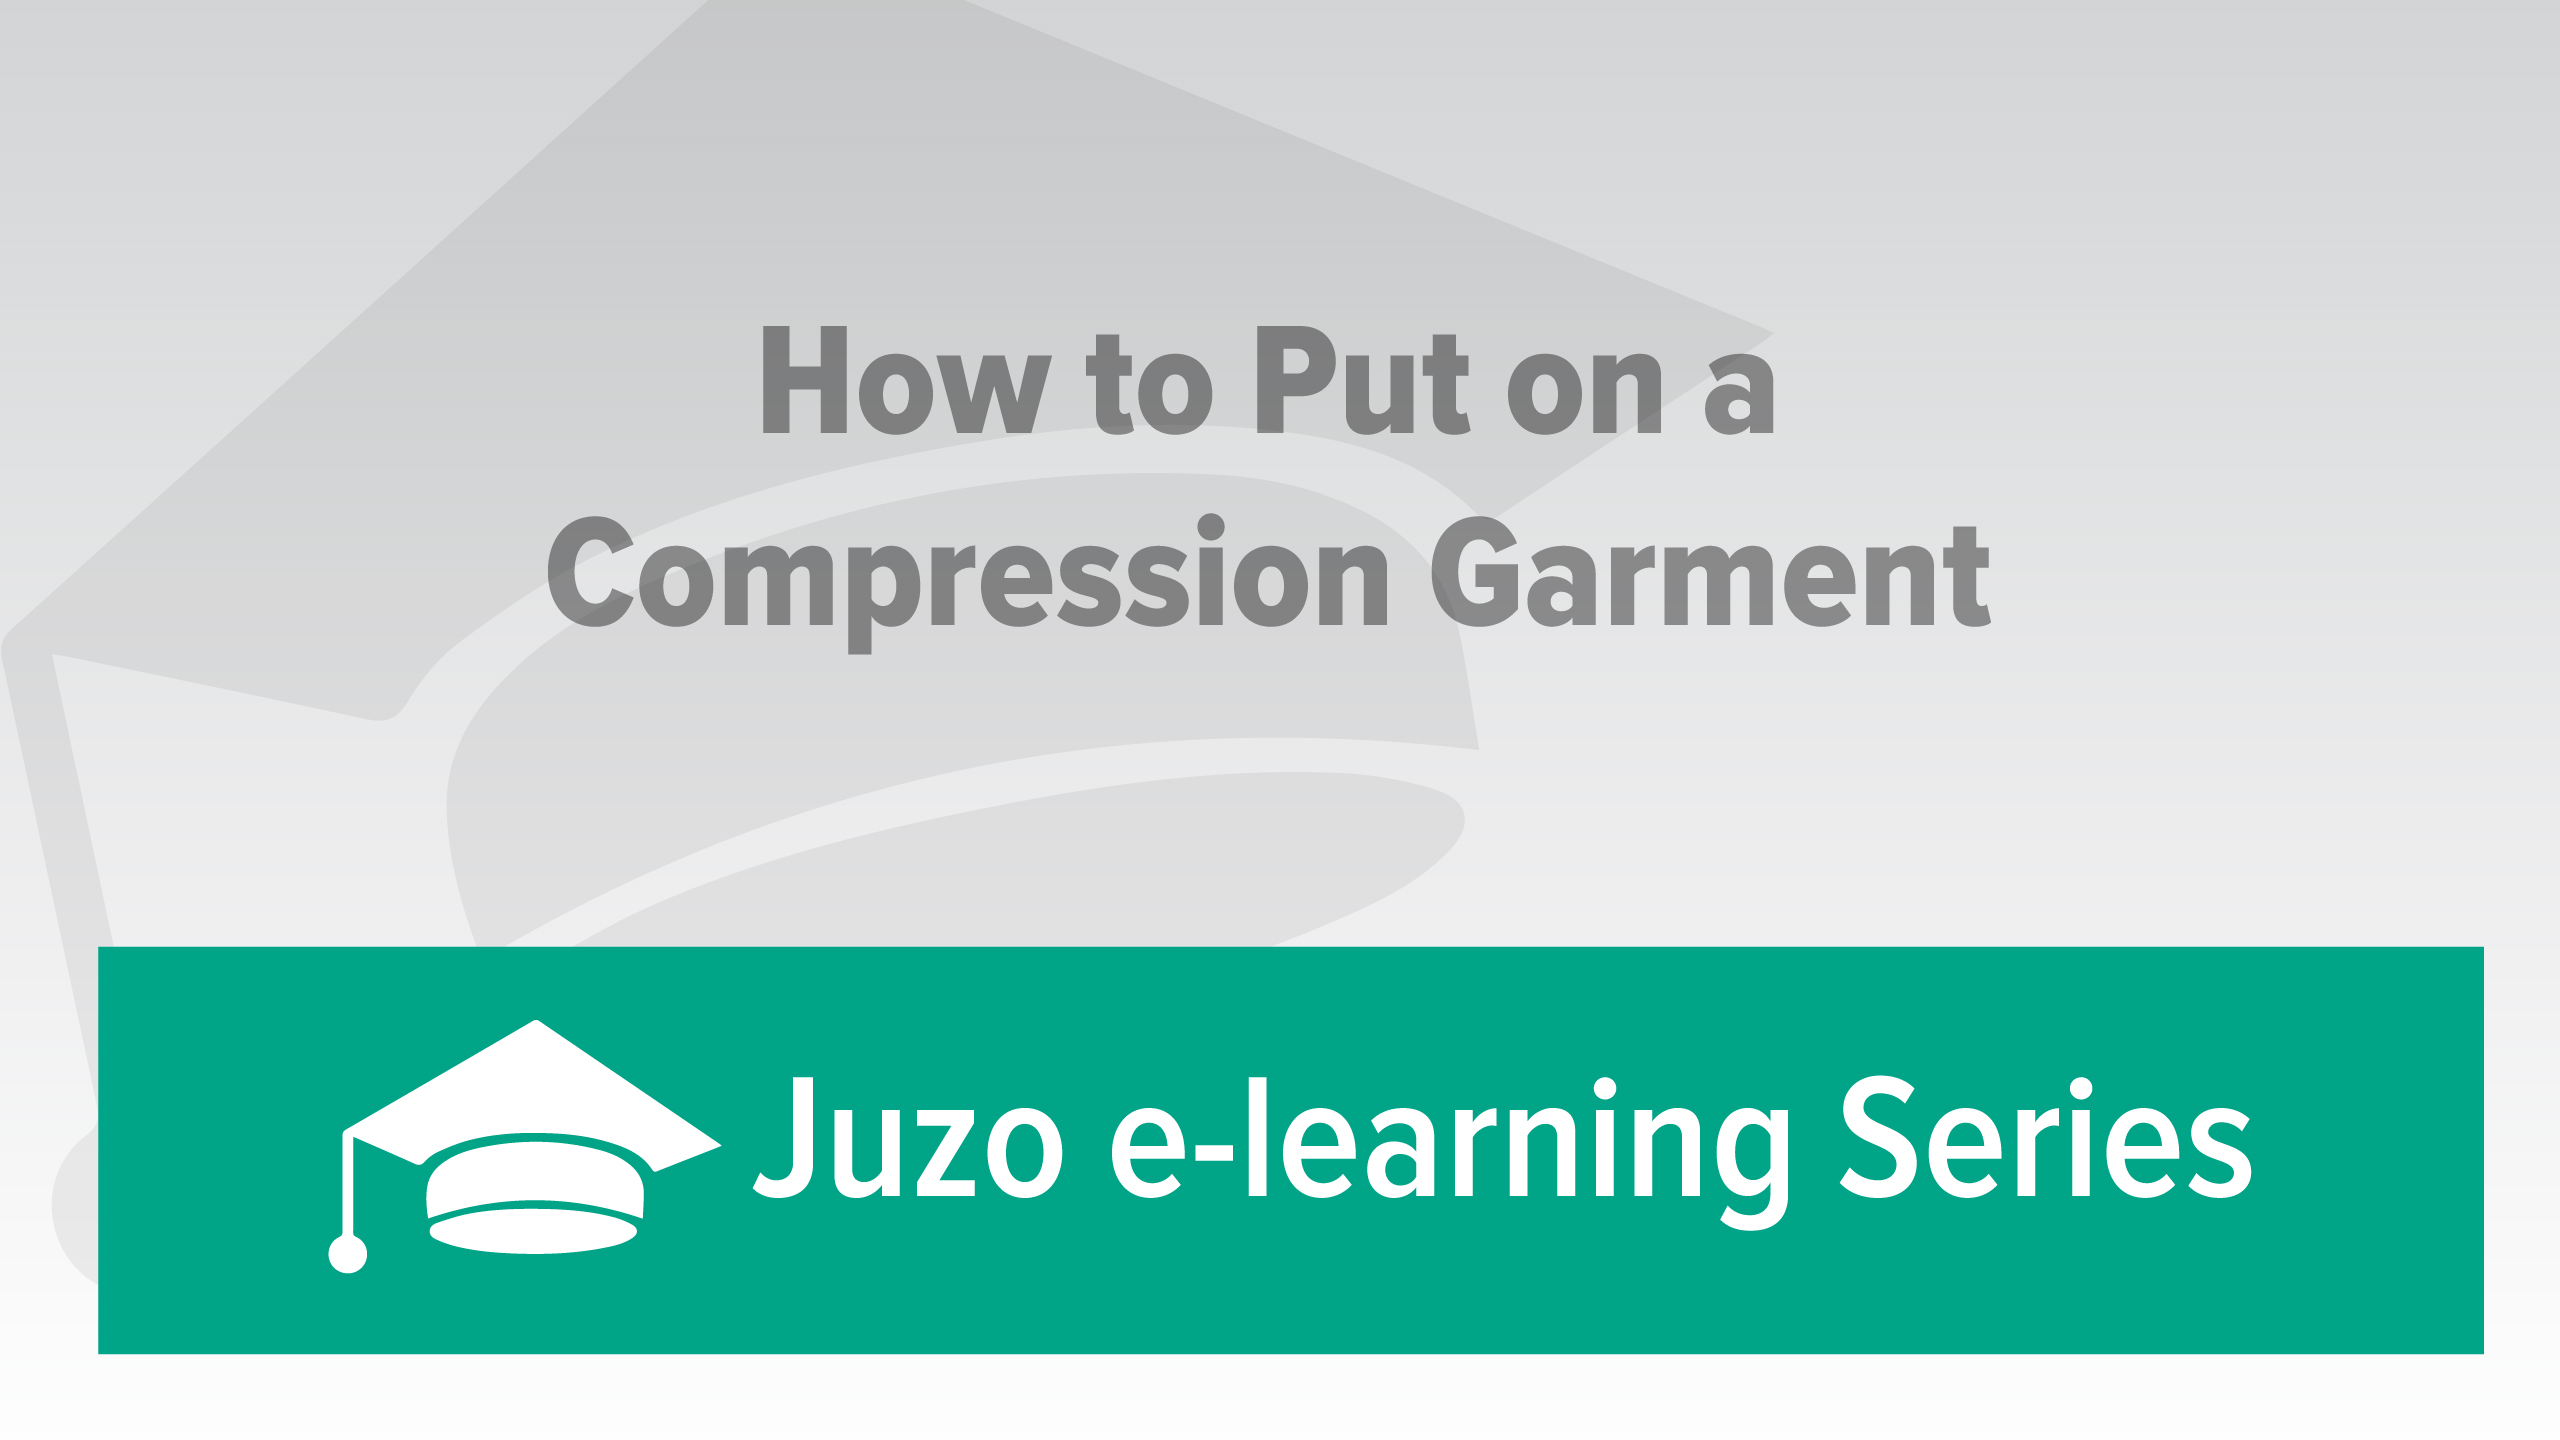 How to put on a Compression Garment